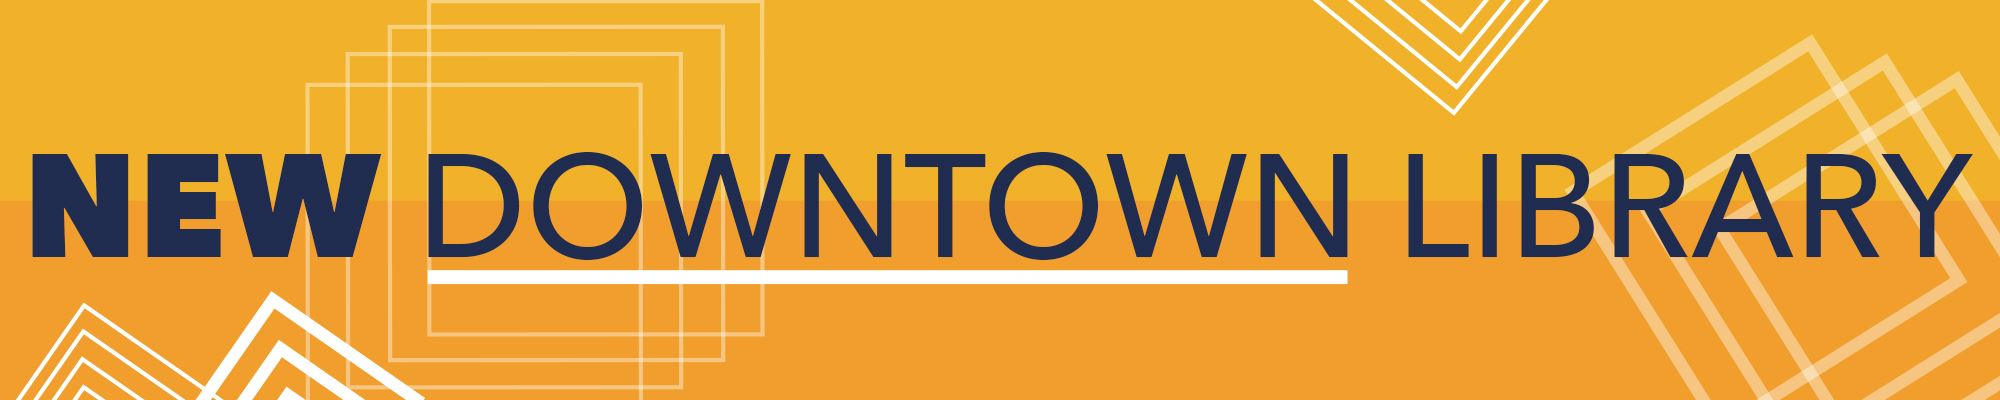 New Downtown Library Website Banner